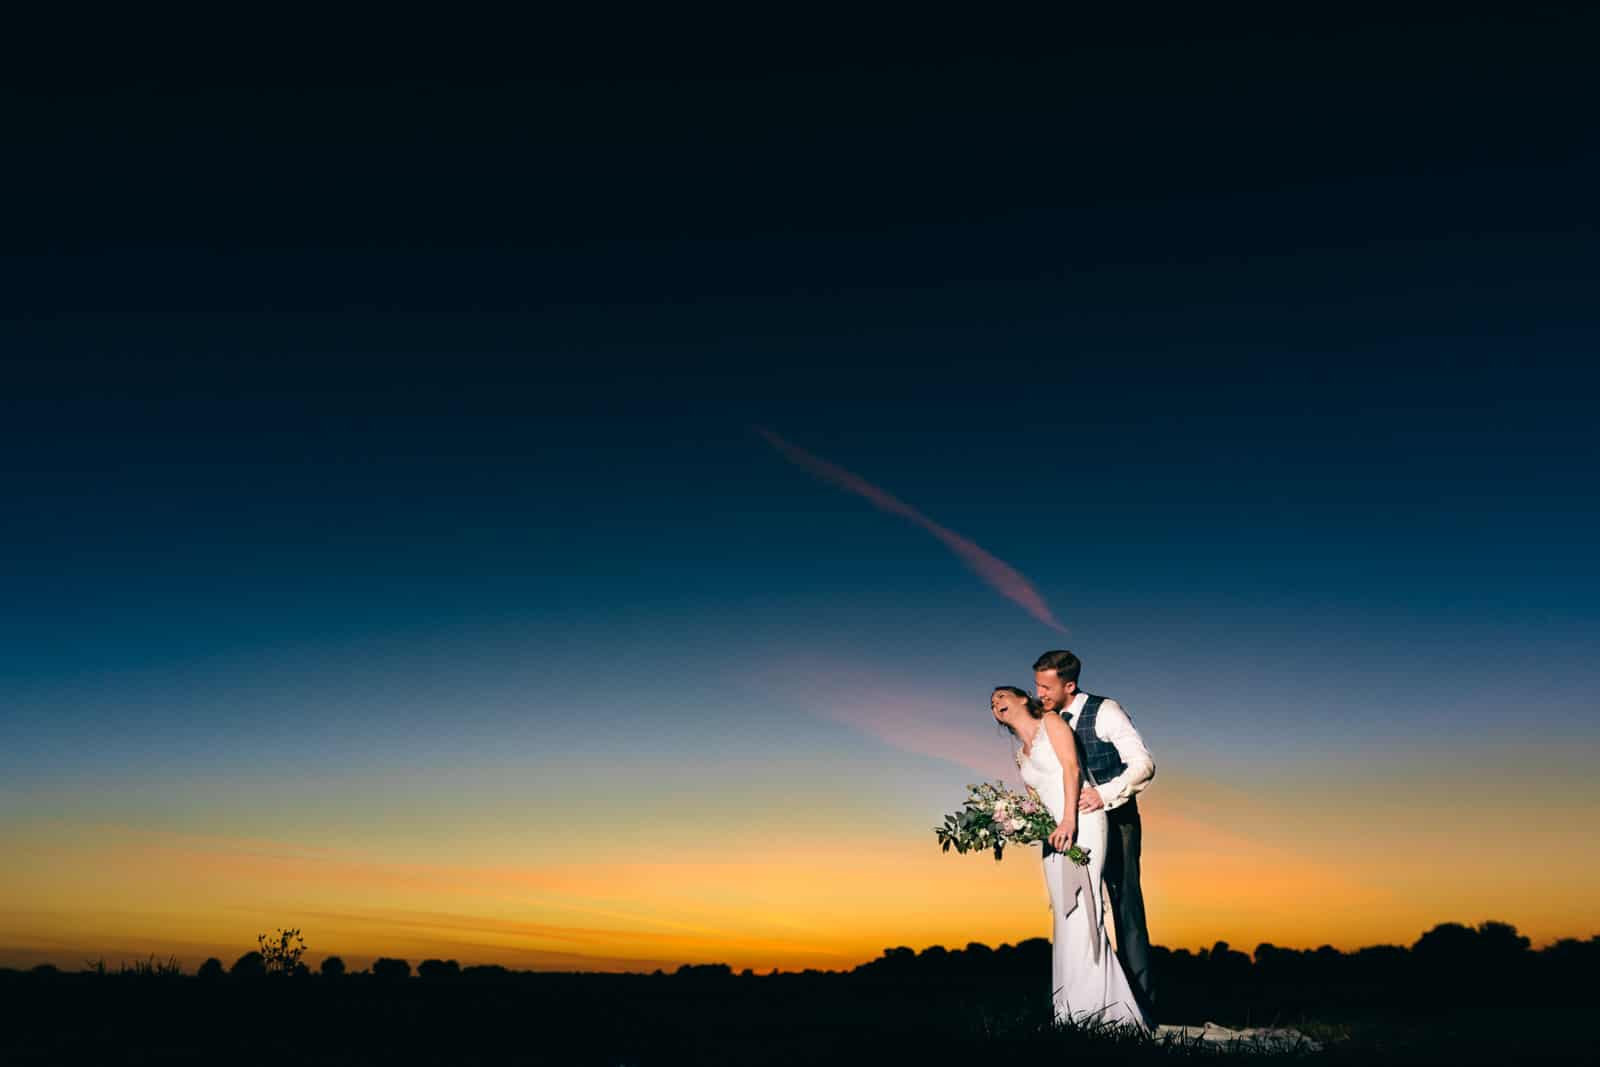 After sundown wedding photography at the Reid Rooms essex